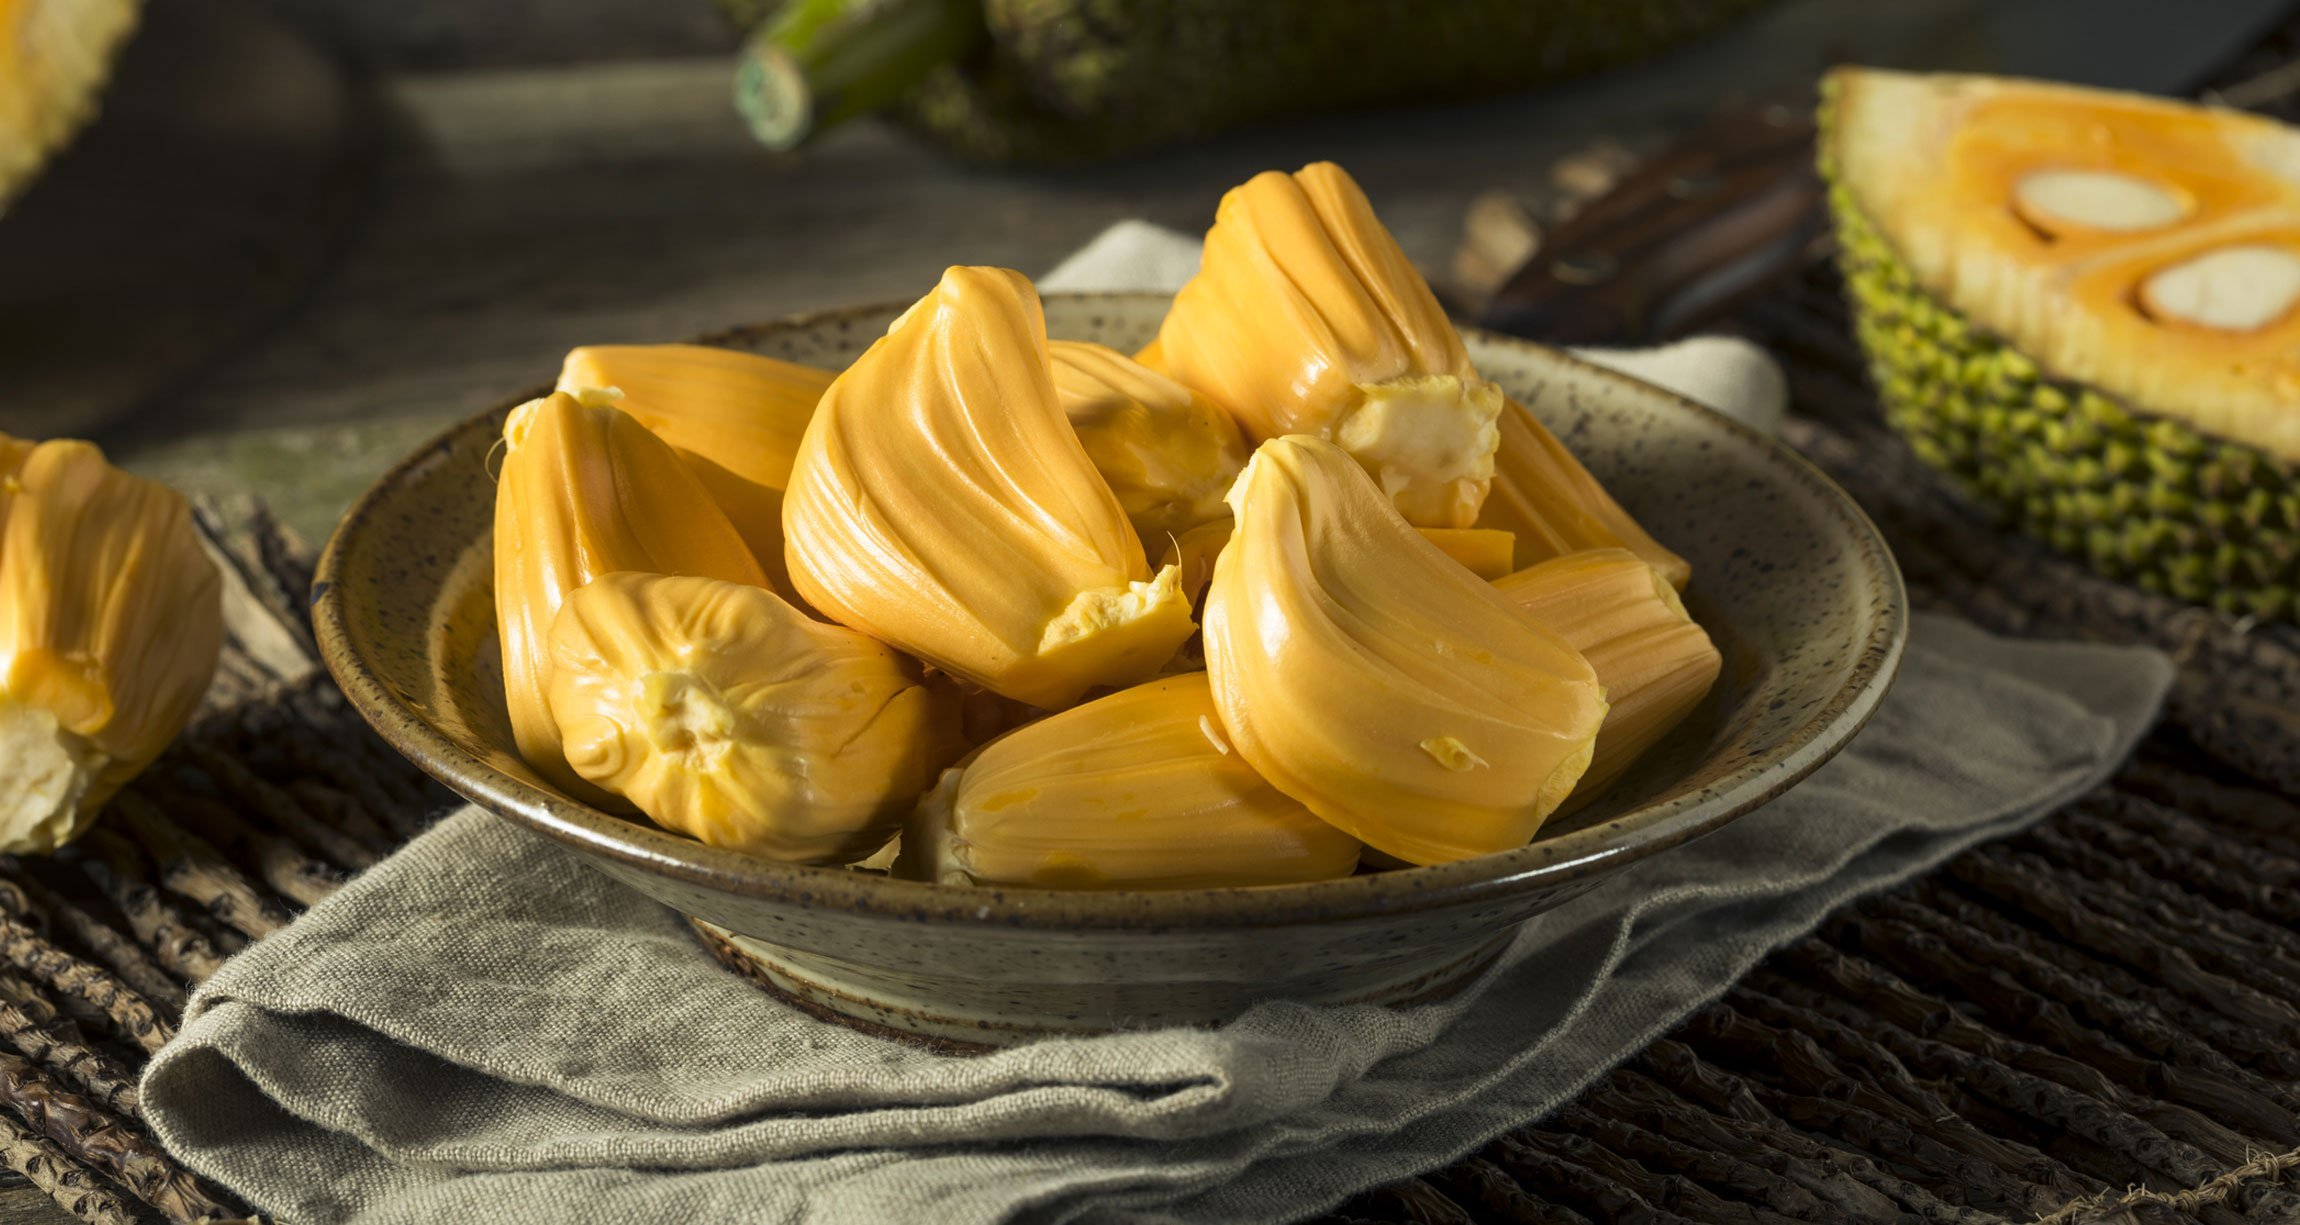 Everything You Need to Know About Jackfruit — An Odd Yet Nutritious and Sustainable Food